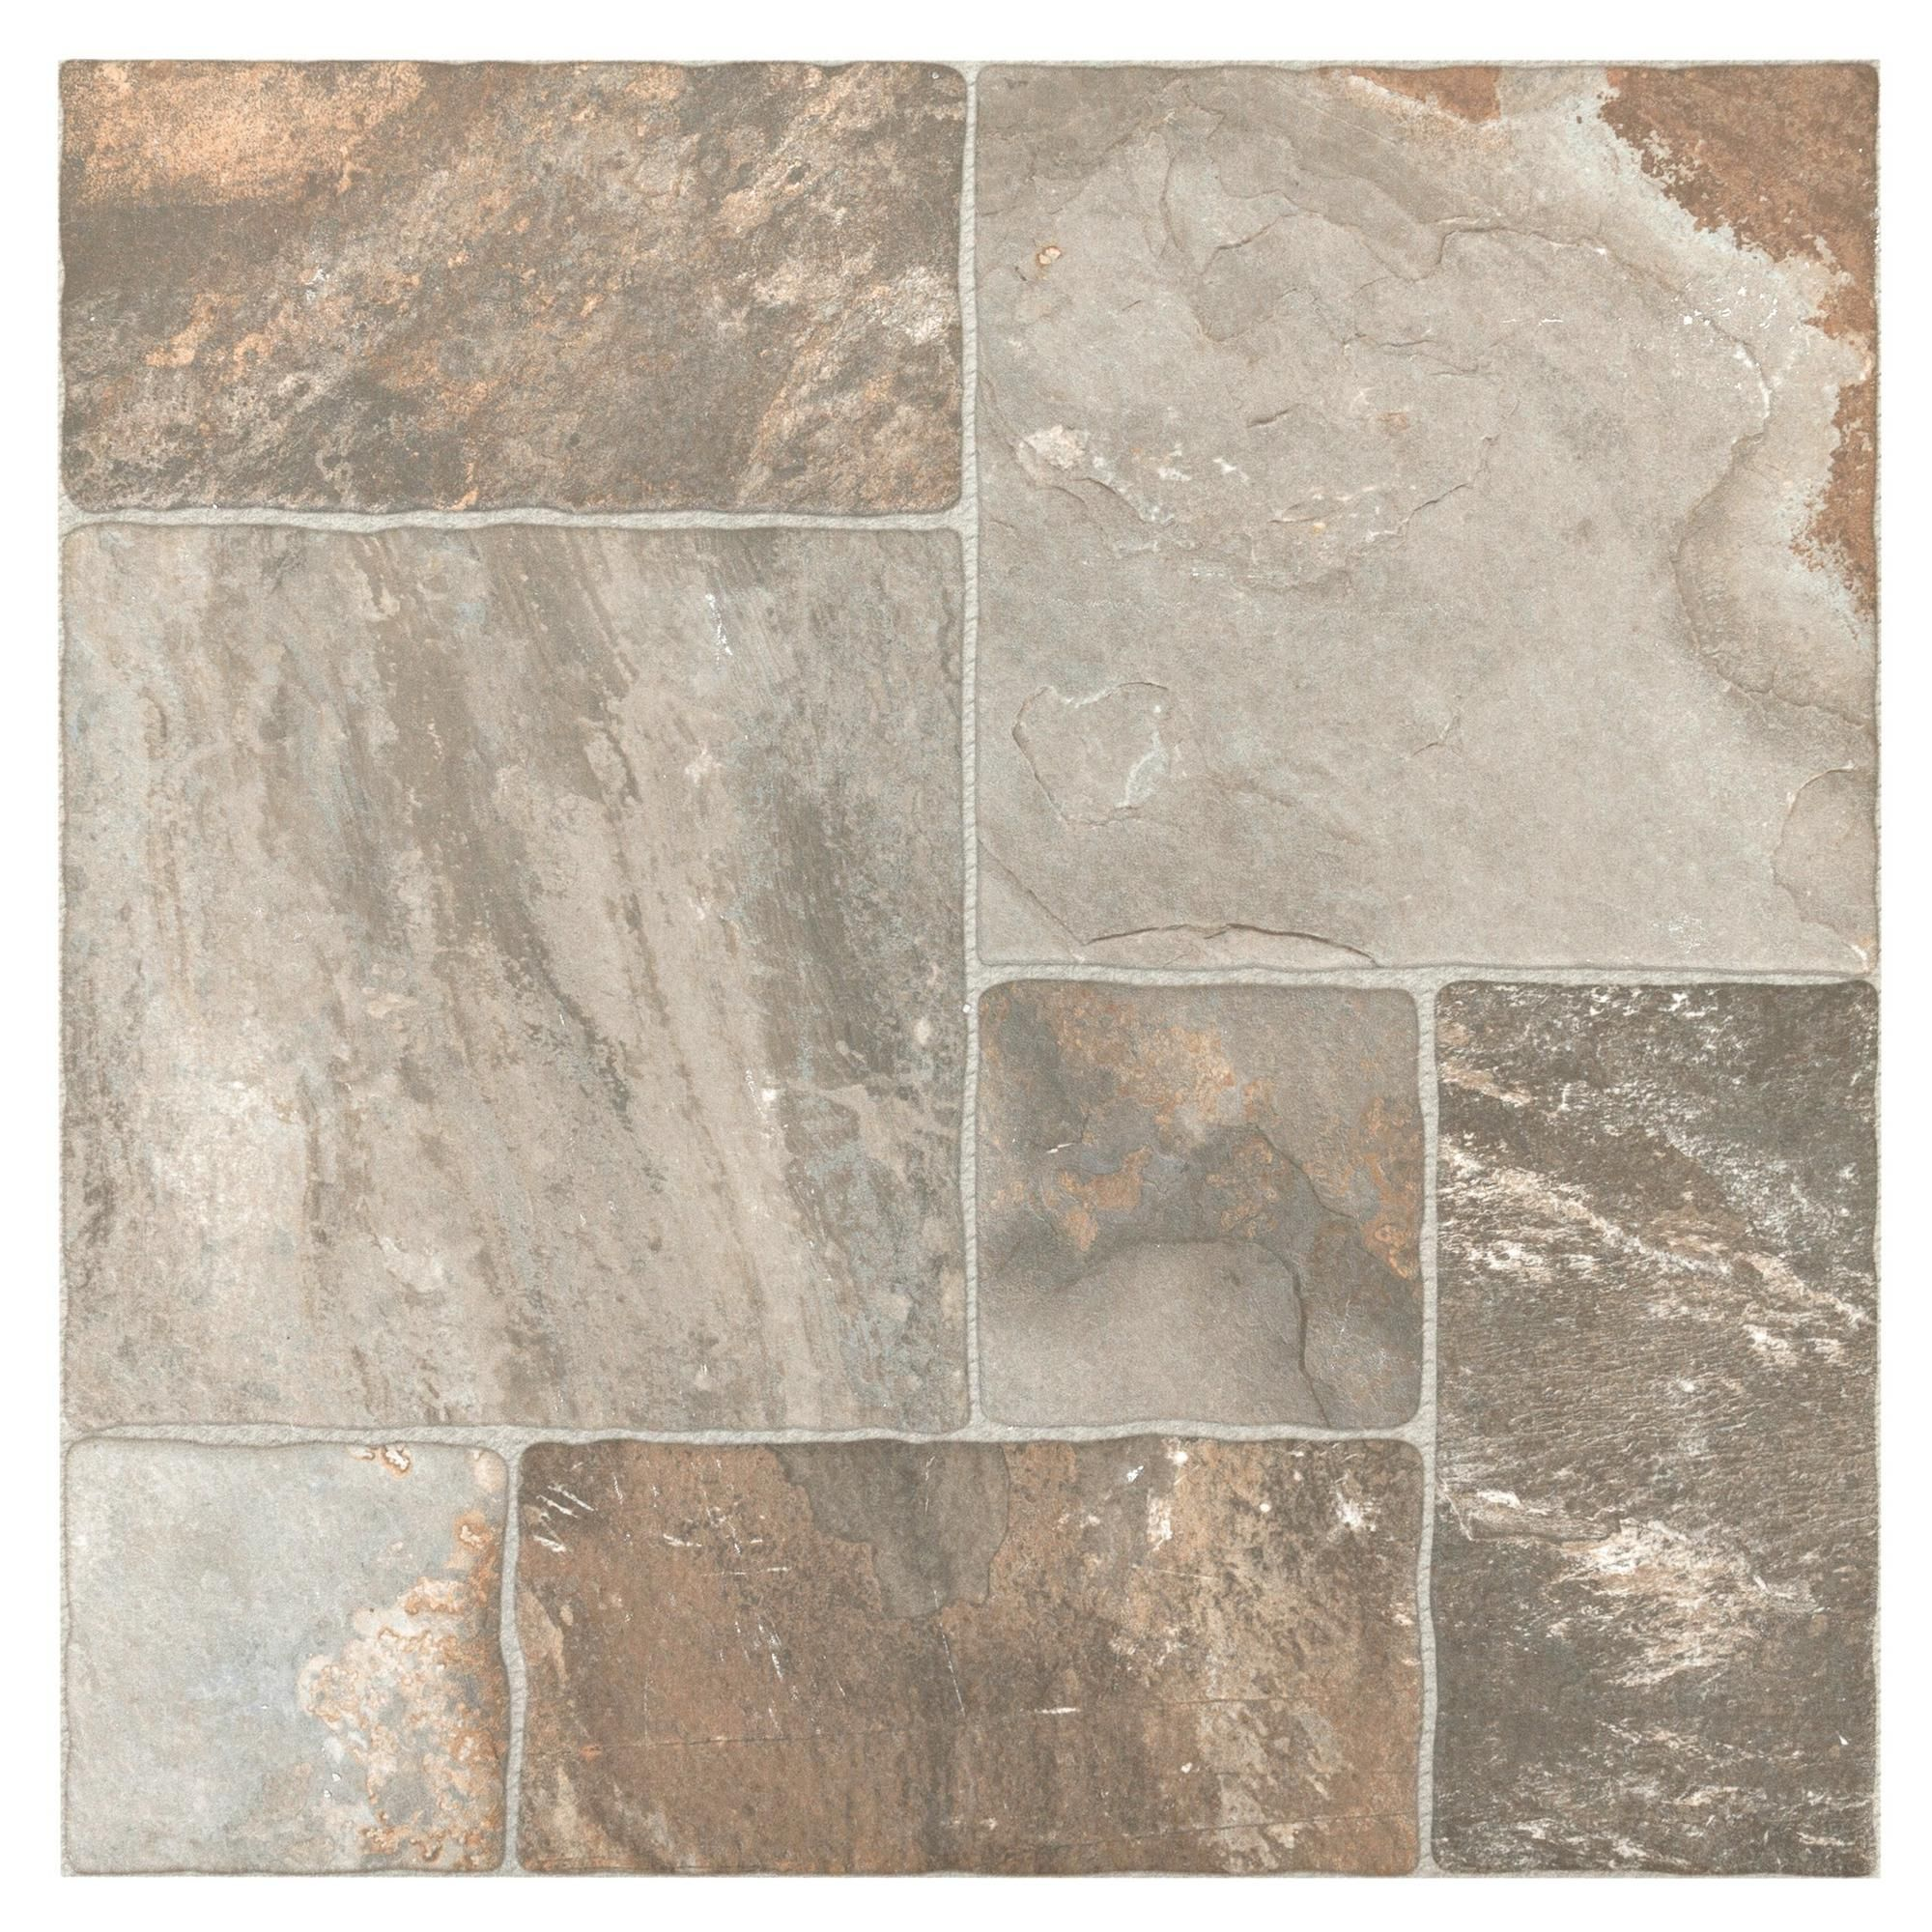 Mix Aran Stone Anti Slip Porcelain Tile Floor Decor Porcelain Floor Tiles Stone Tile Flooring Stone Look Tile